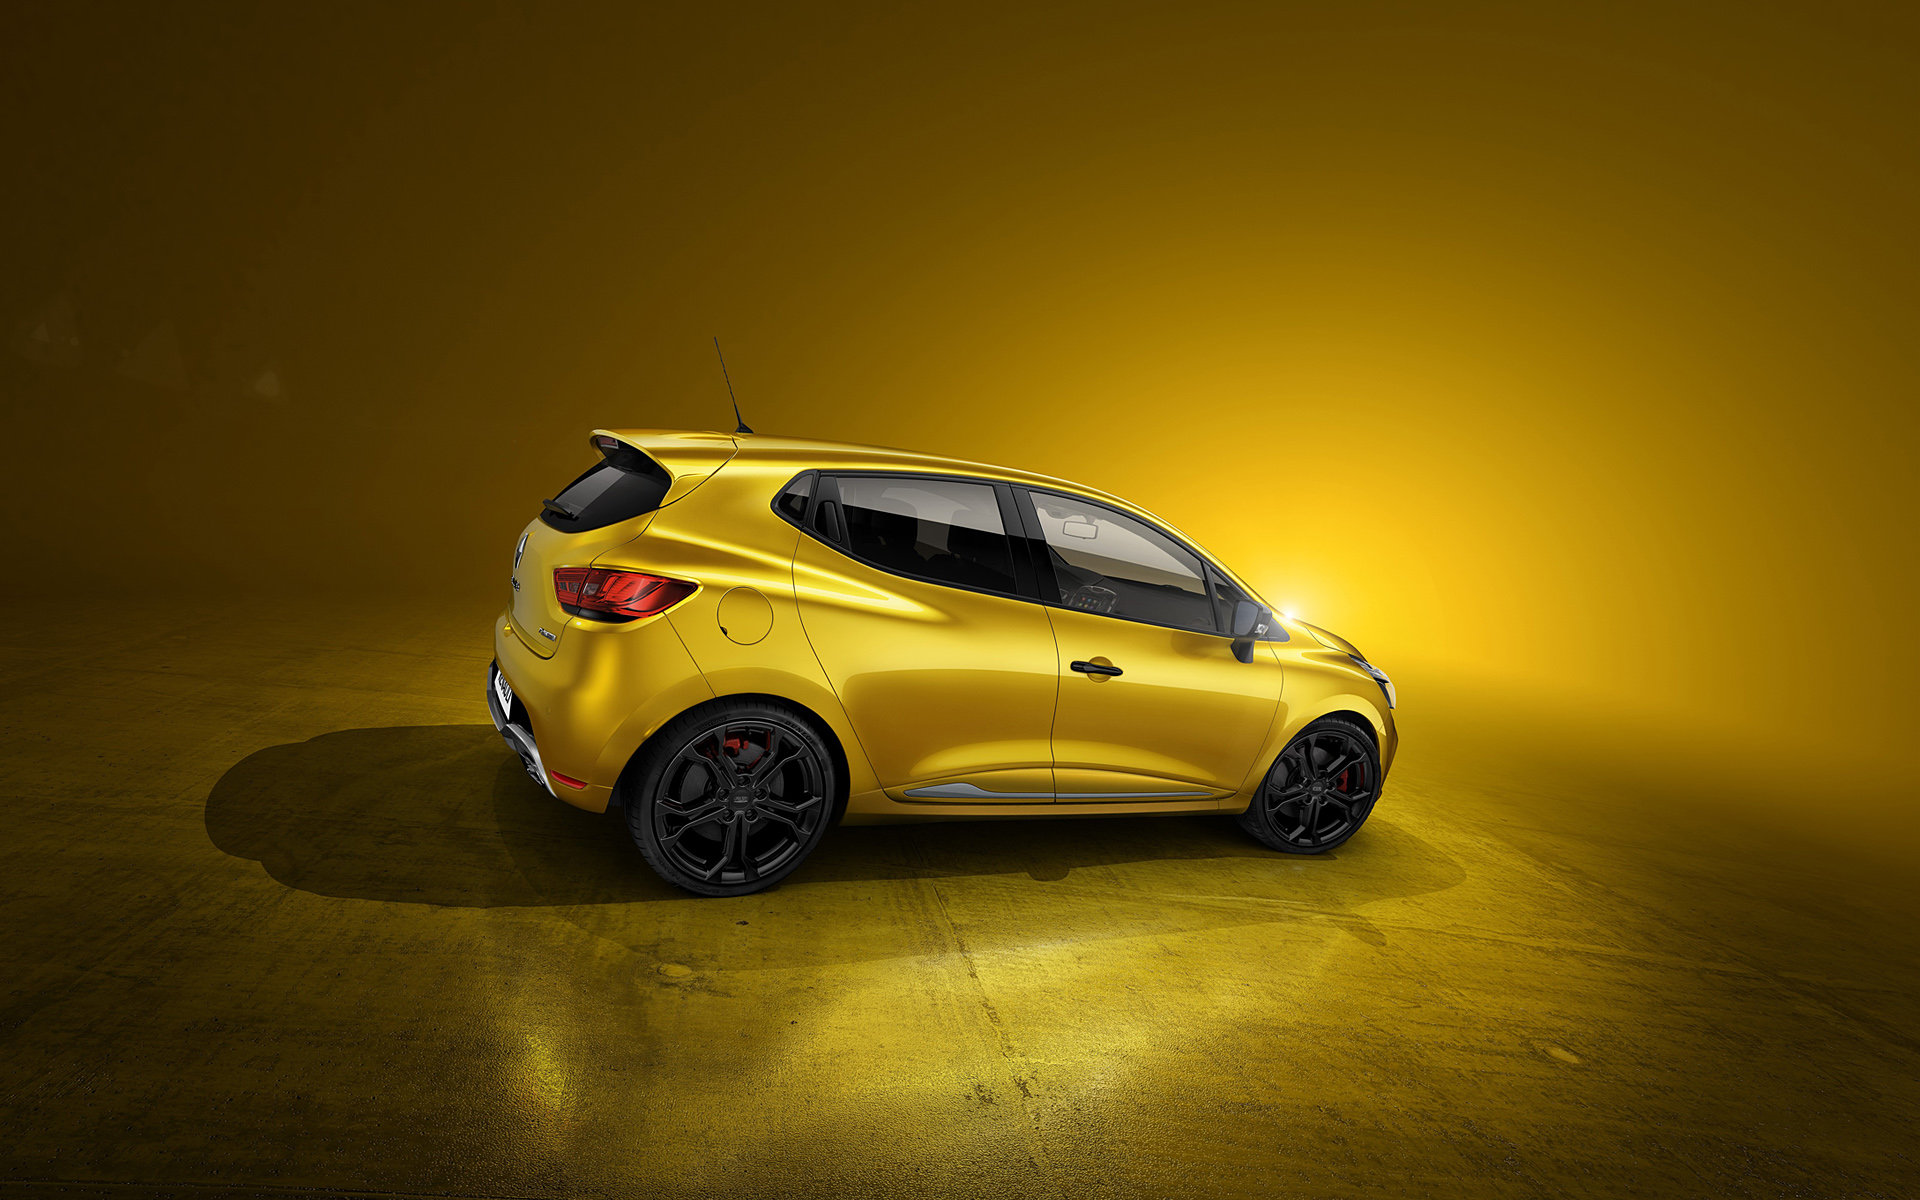 Best Renault Clio wallpaper ID:250167 for High Resolution hd 1920x1200 computer